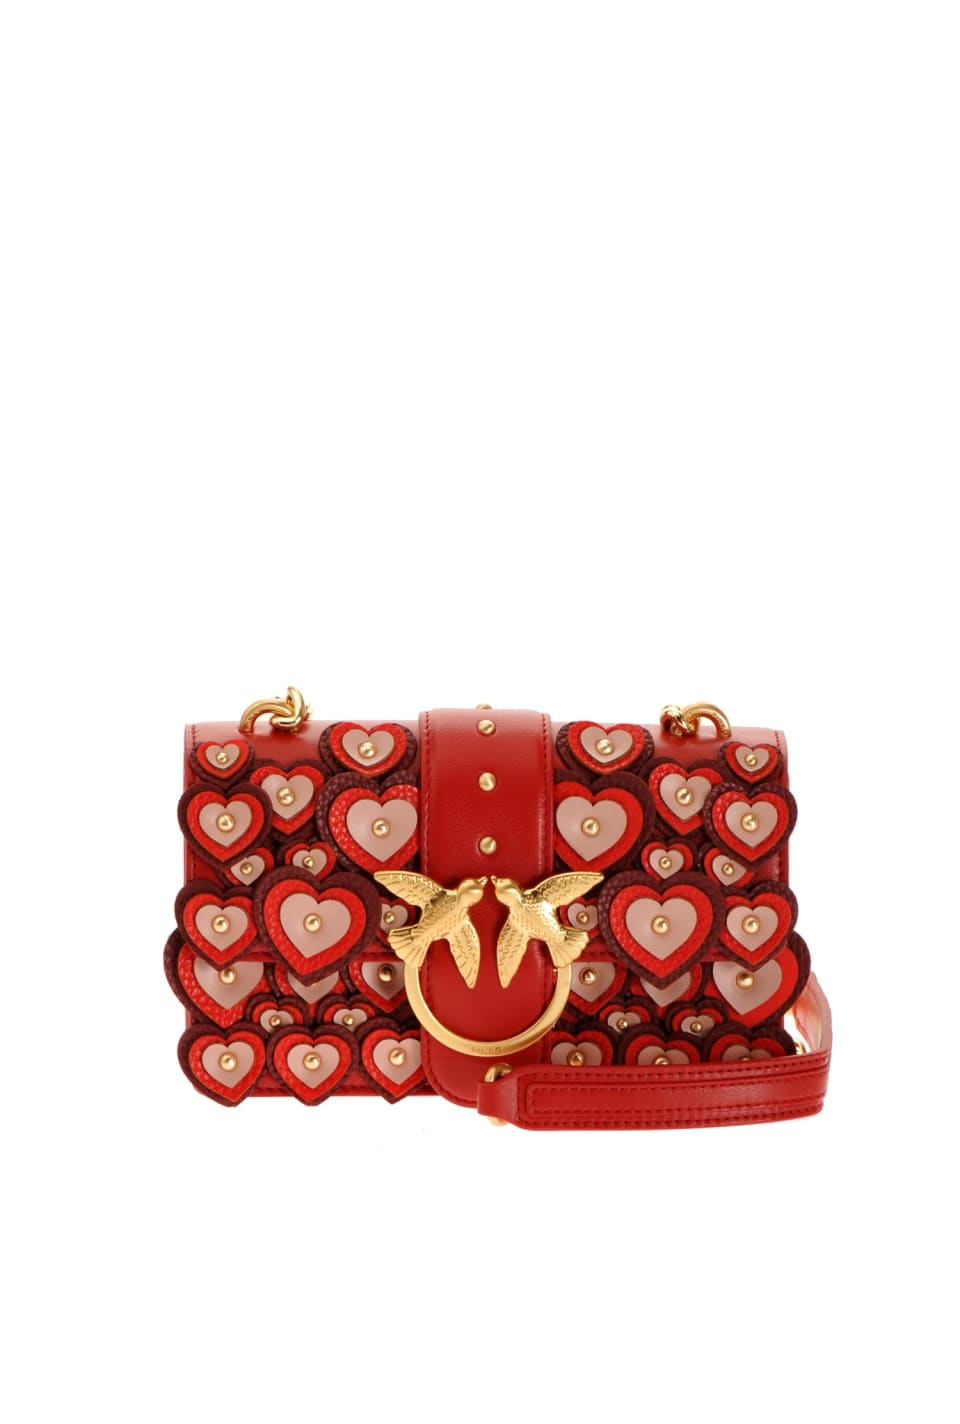 Mini Love Bag Full Love with appliquéd hearts